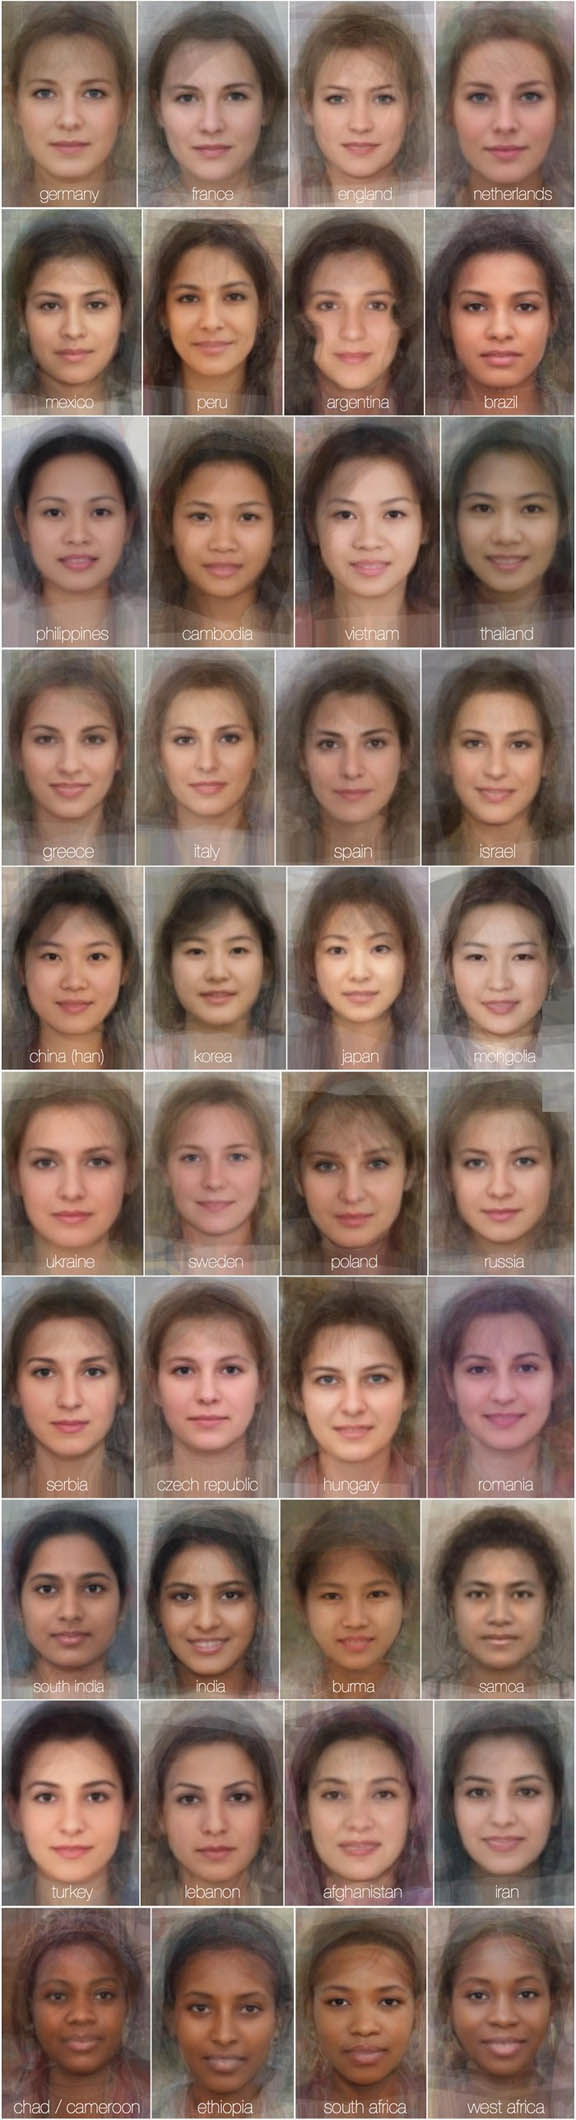 The-Average-Womans-Face-Around-The-World.jpg